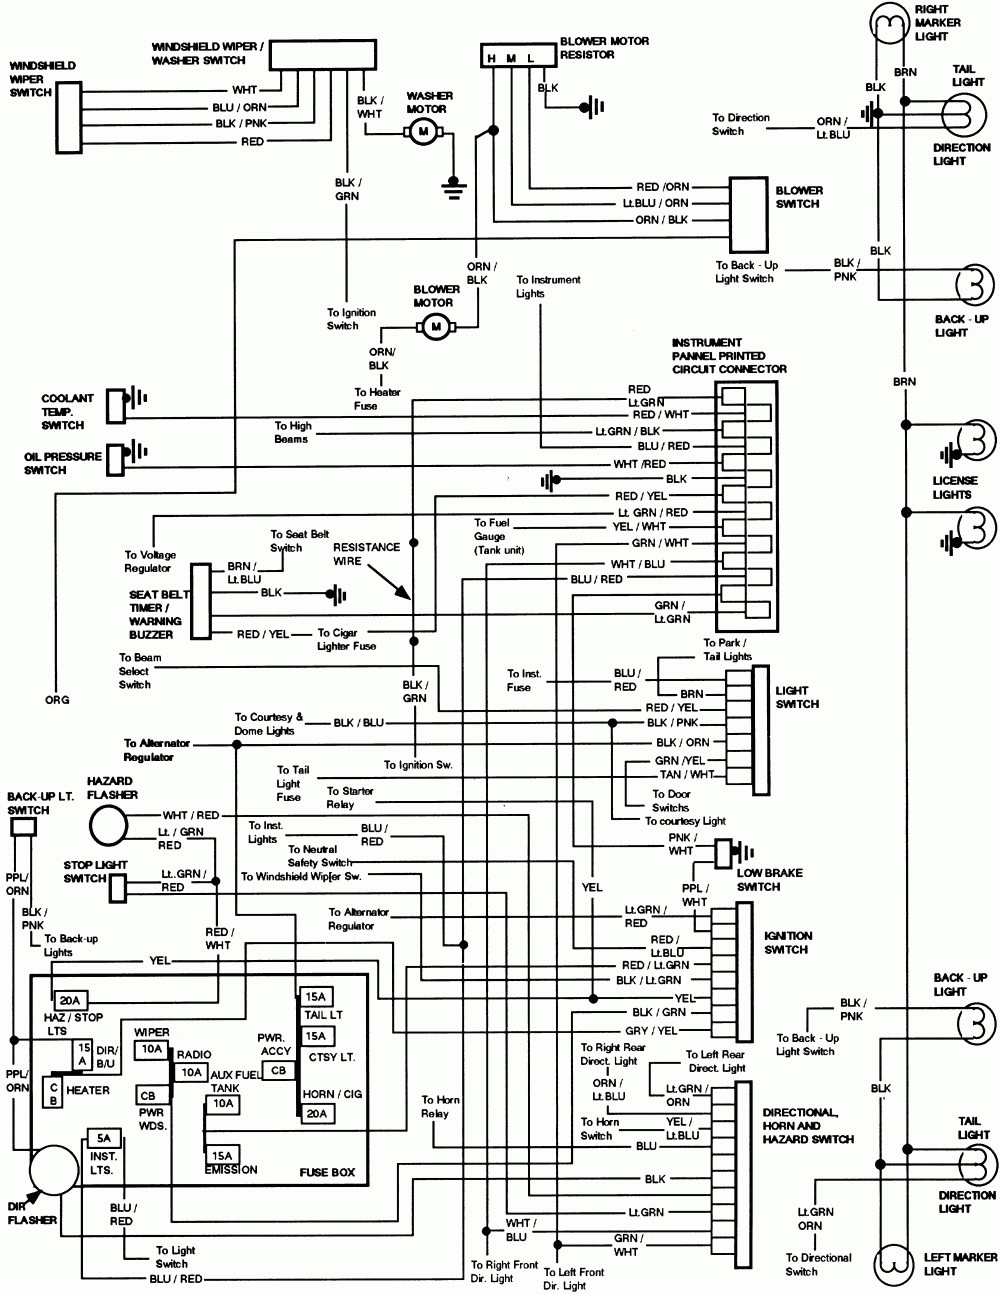 85 Ford Bronco Wiring Diagram Wiring Diagram Data Schema